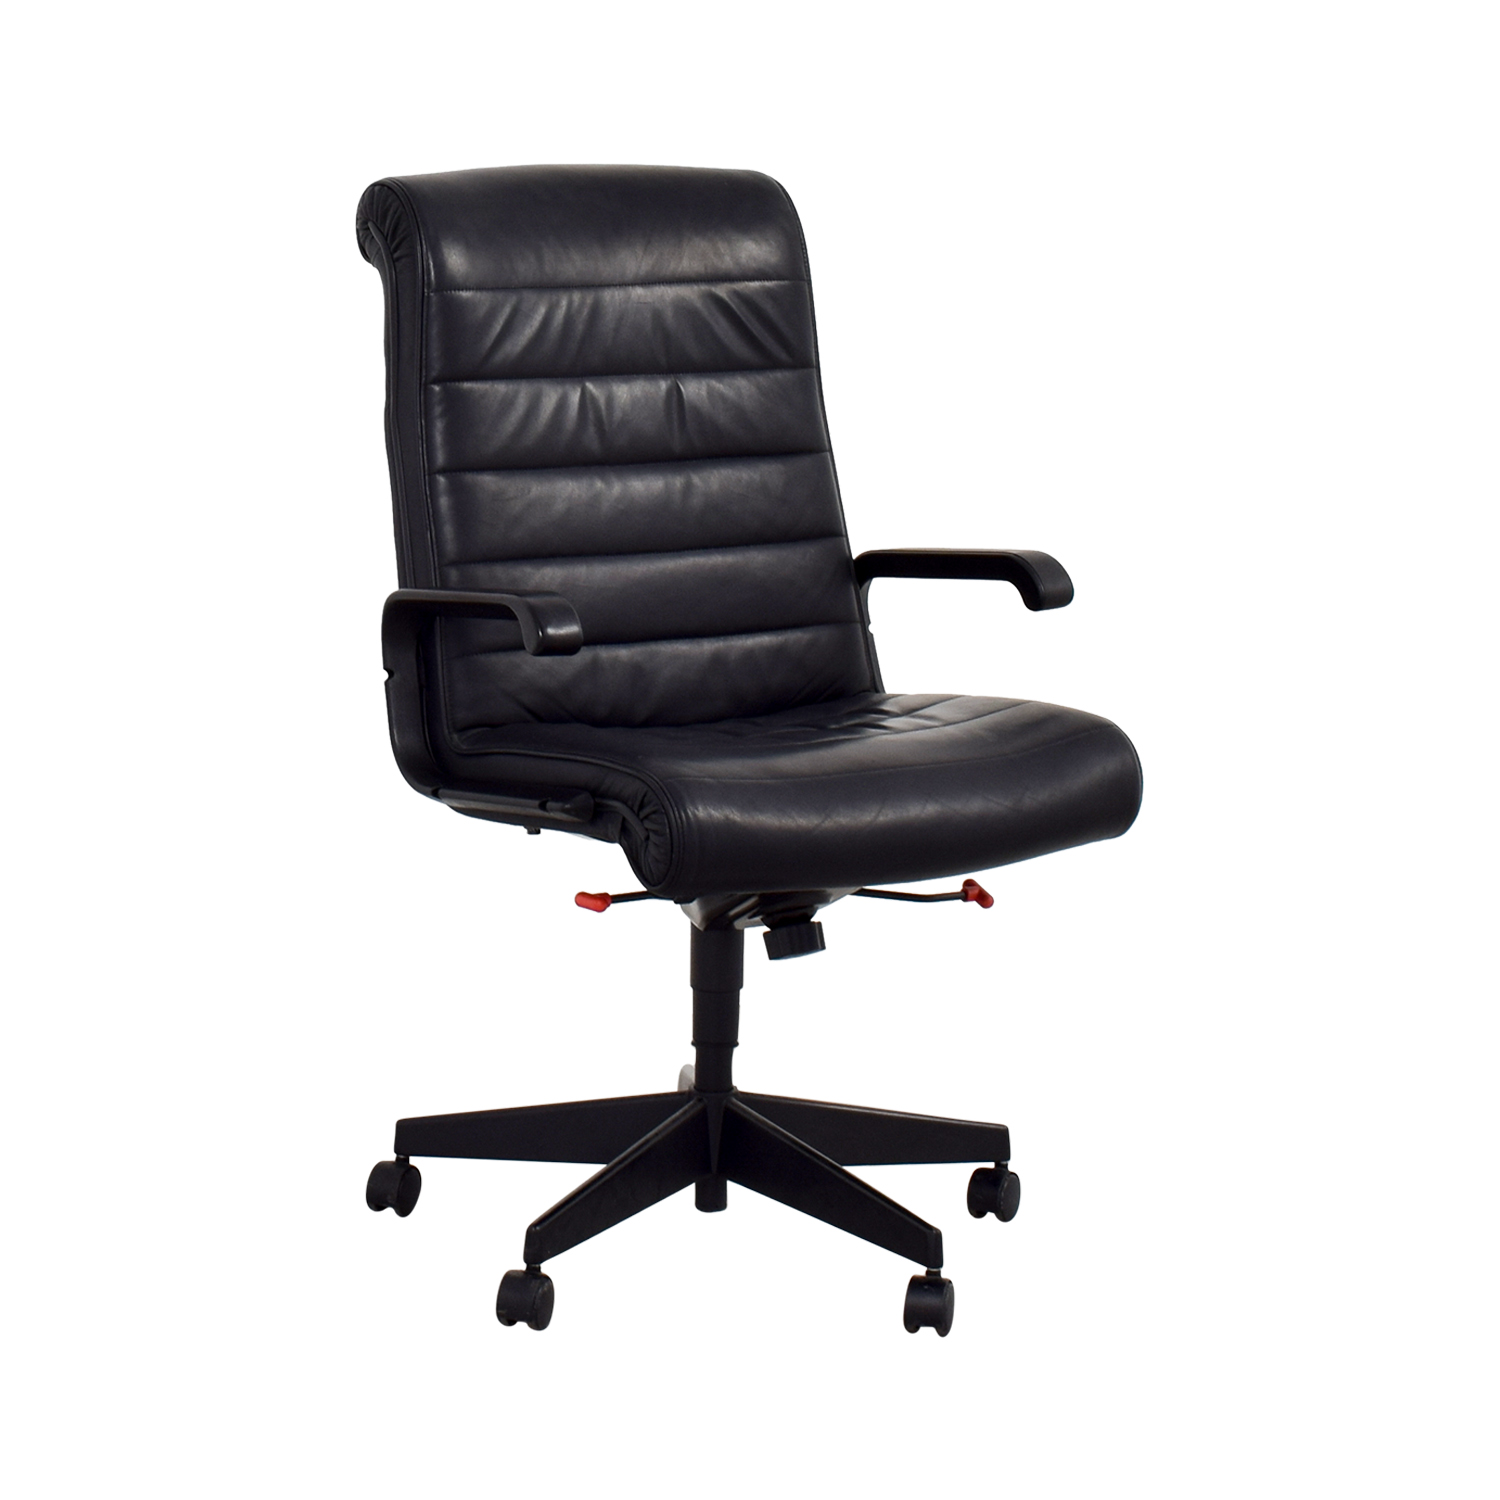 Leather Office Chairs Cheap 90 Off Black Leather Office Chair Chairs